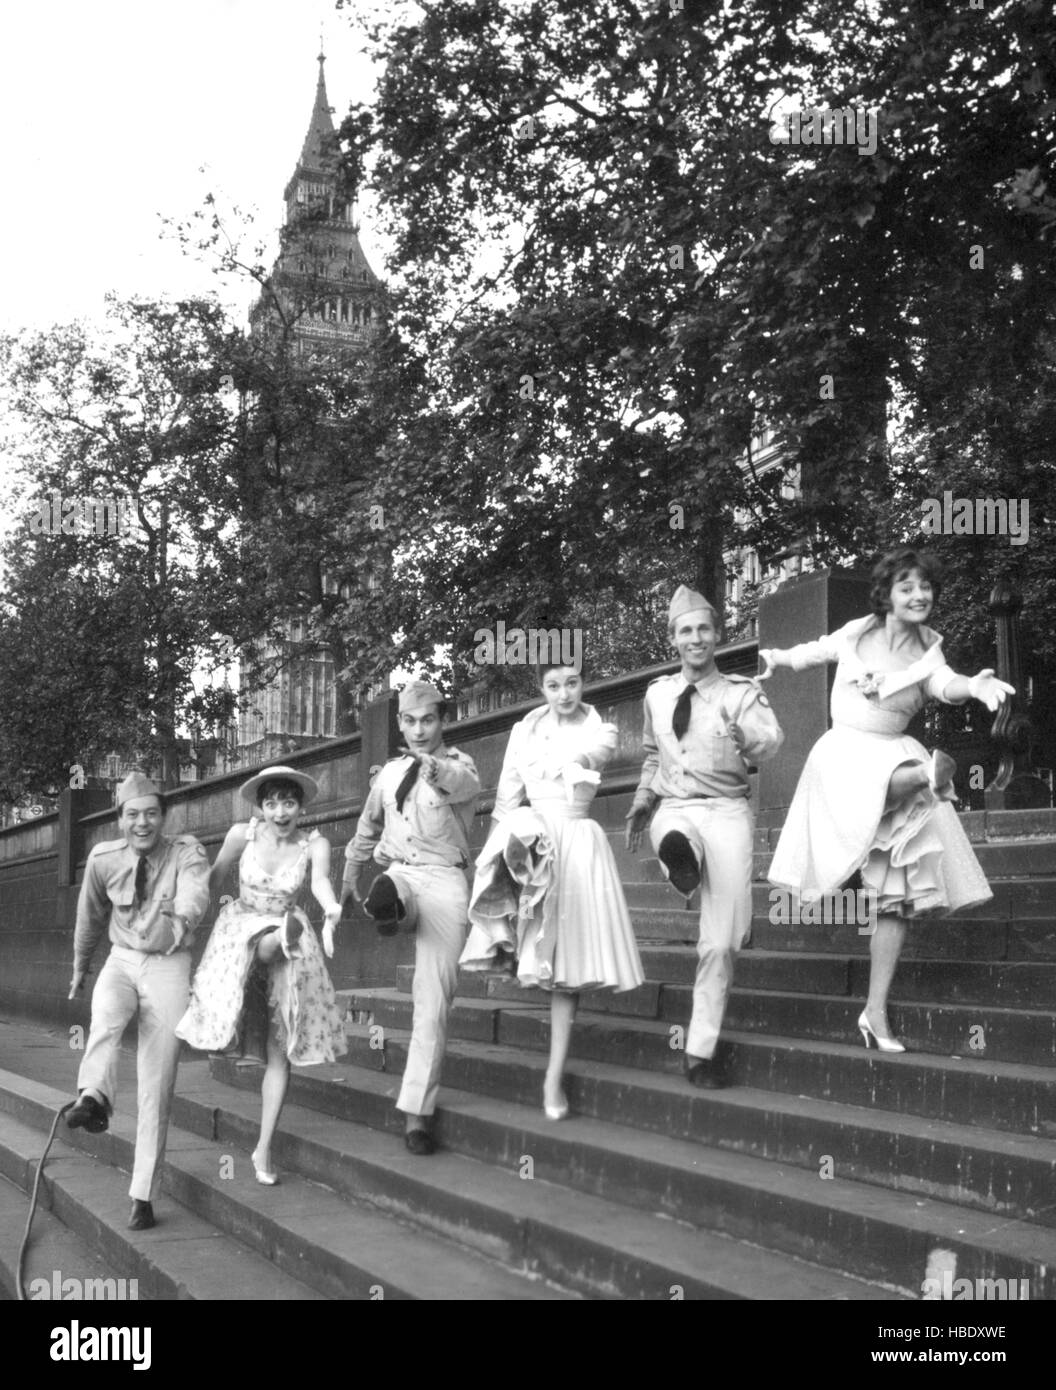 Energetic high-kickers on the Victorian Embankment steps in London were going through their paces at 5am today. - Stock Image